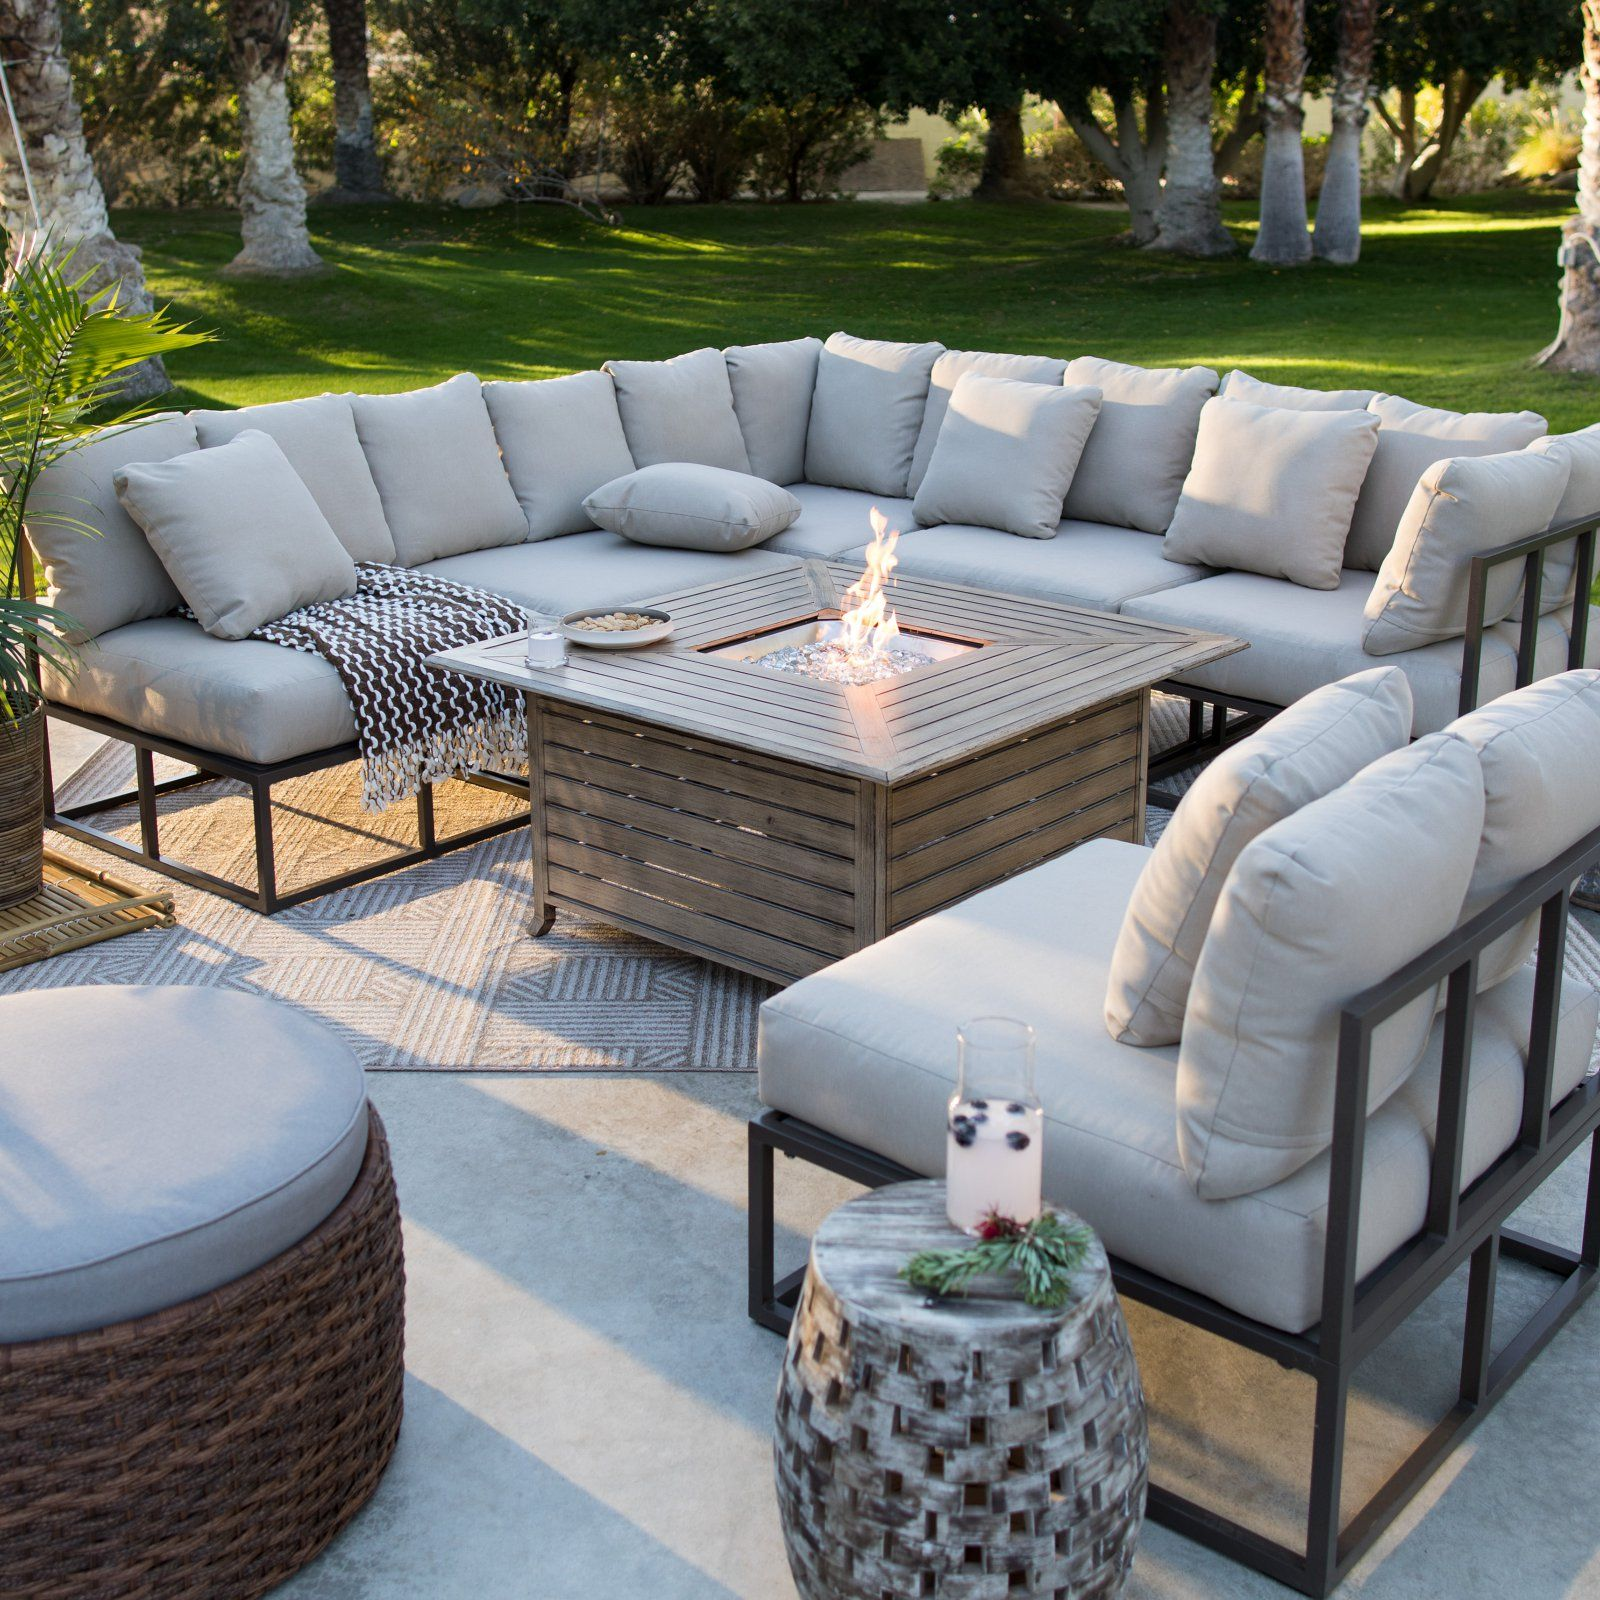 Patio Garden In 2020 Outdoor Furniture Sets Patio Design